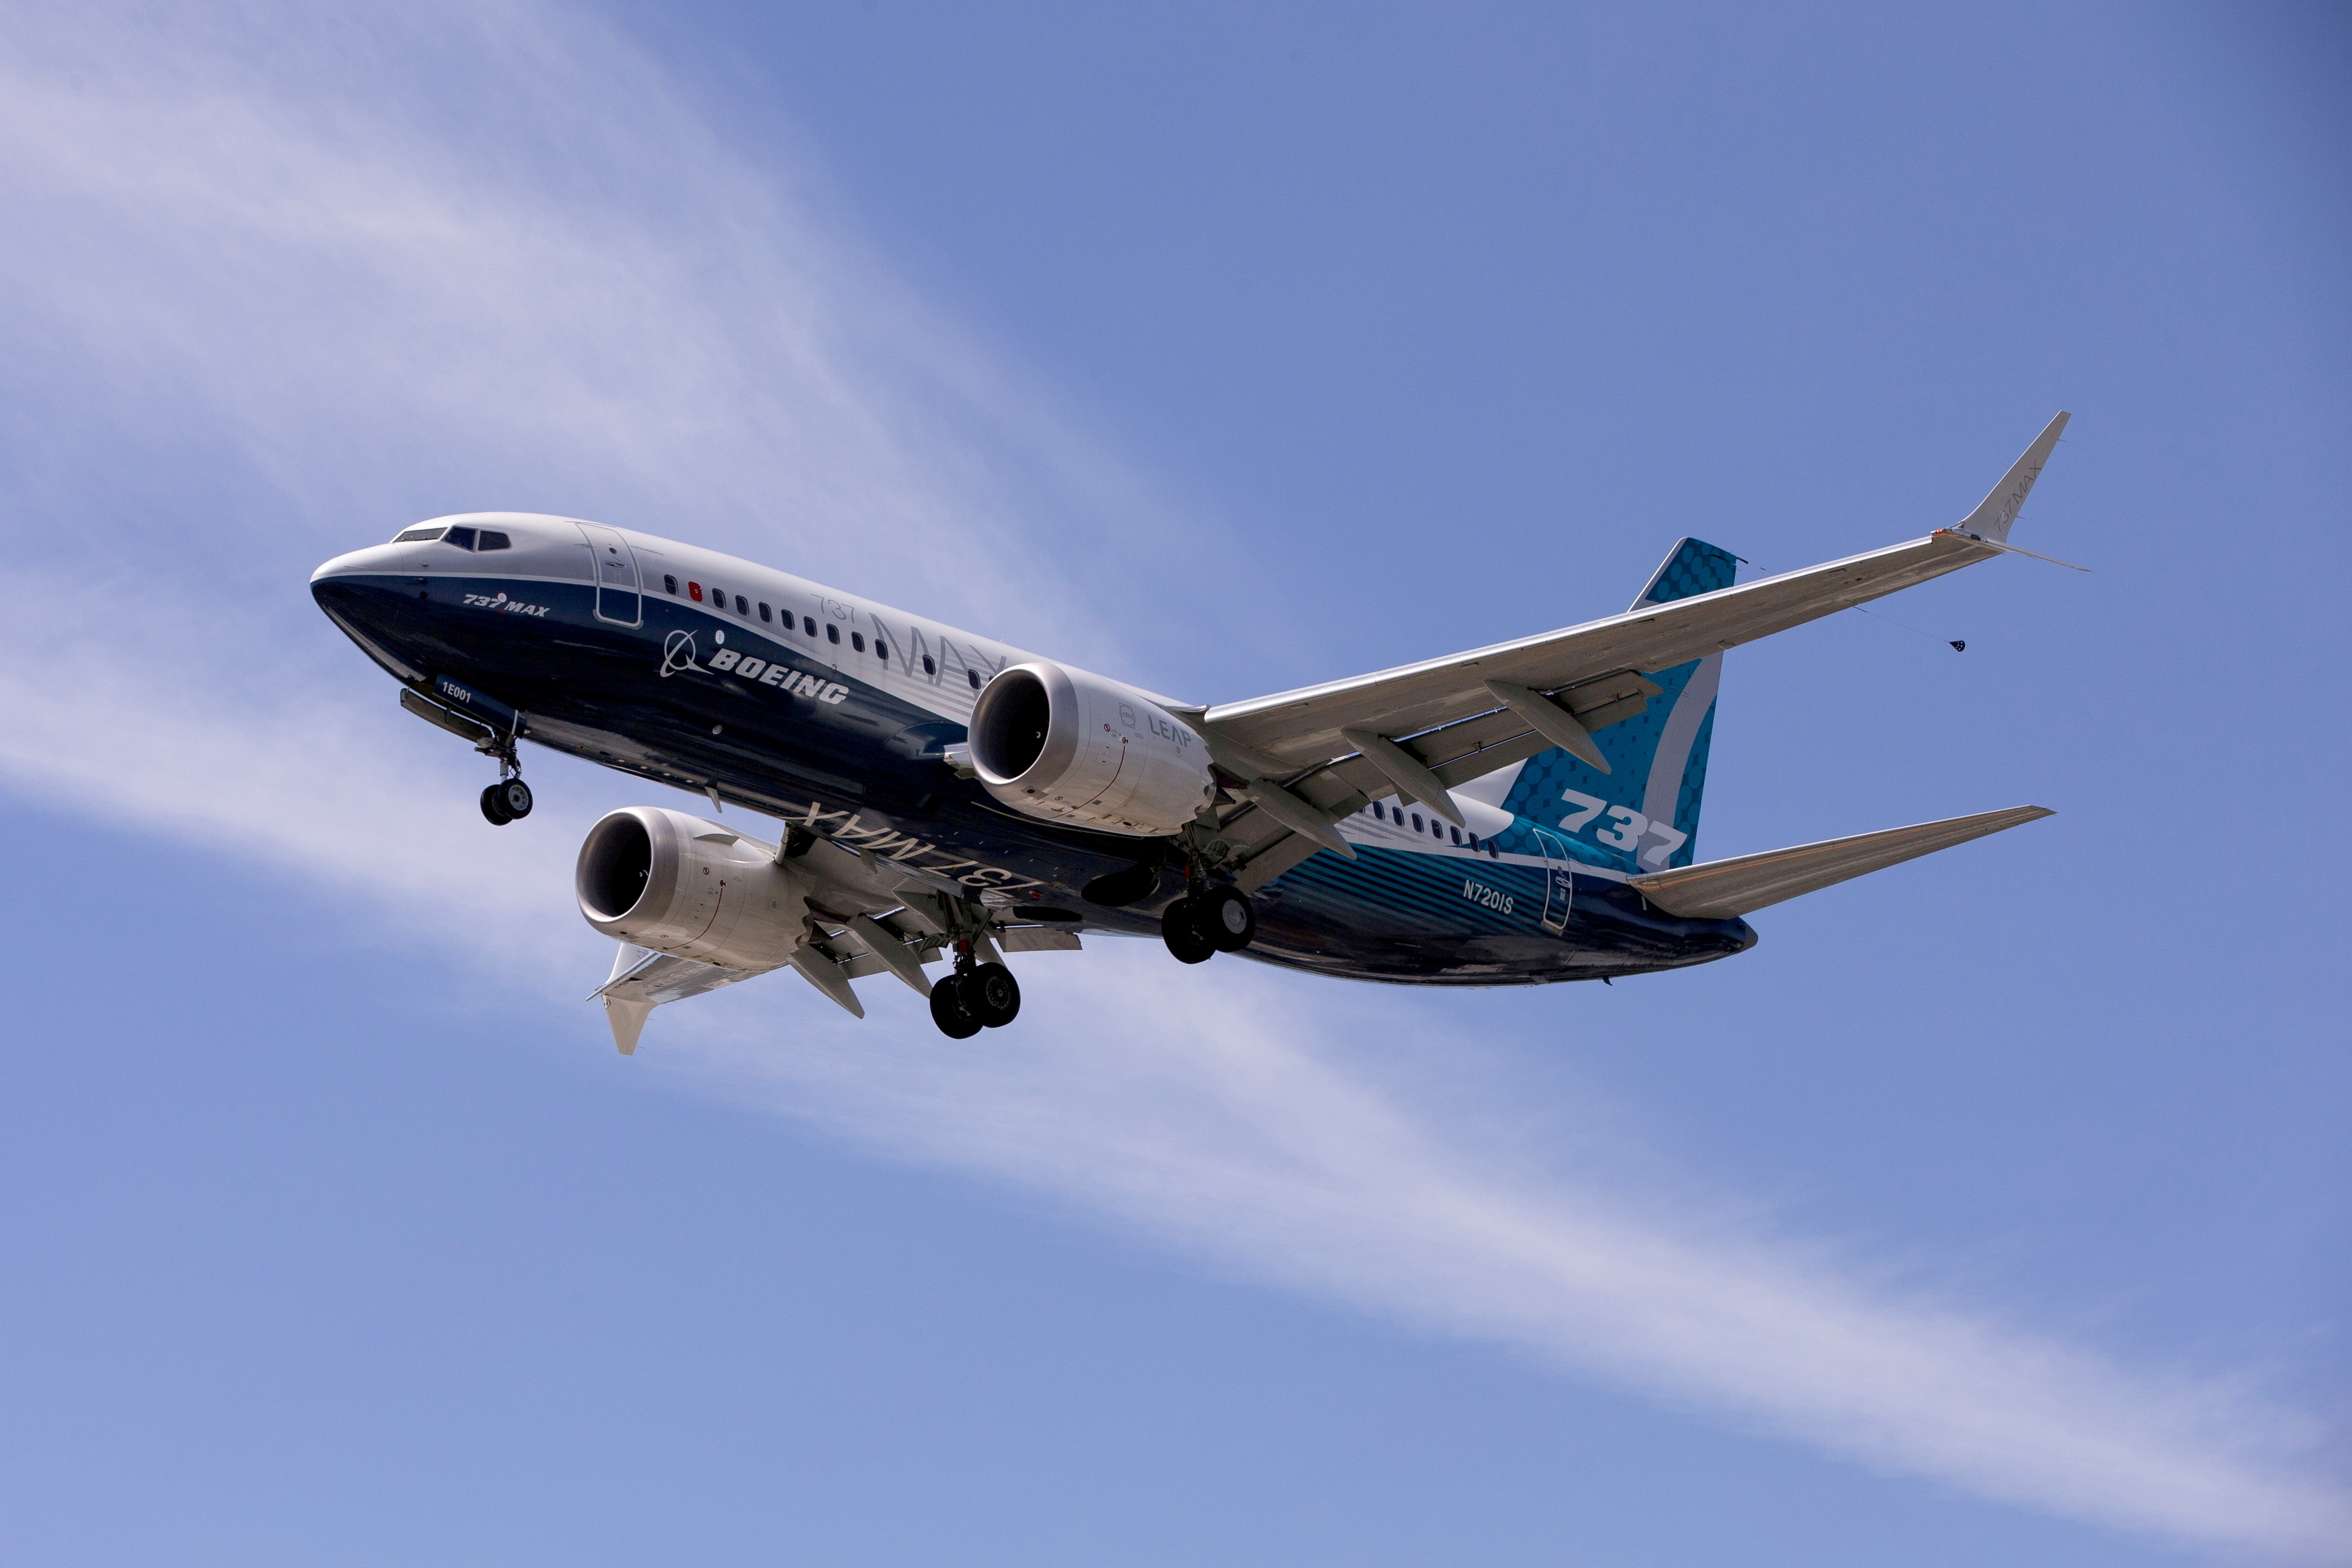 A Boeing 737 MAX airplane lands after a test flight at Boeing Field in Seattle, Washington, U.S. June 29, 2020. REUTERS/Karen Ducey/File Photo